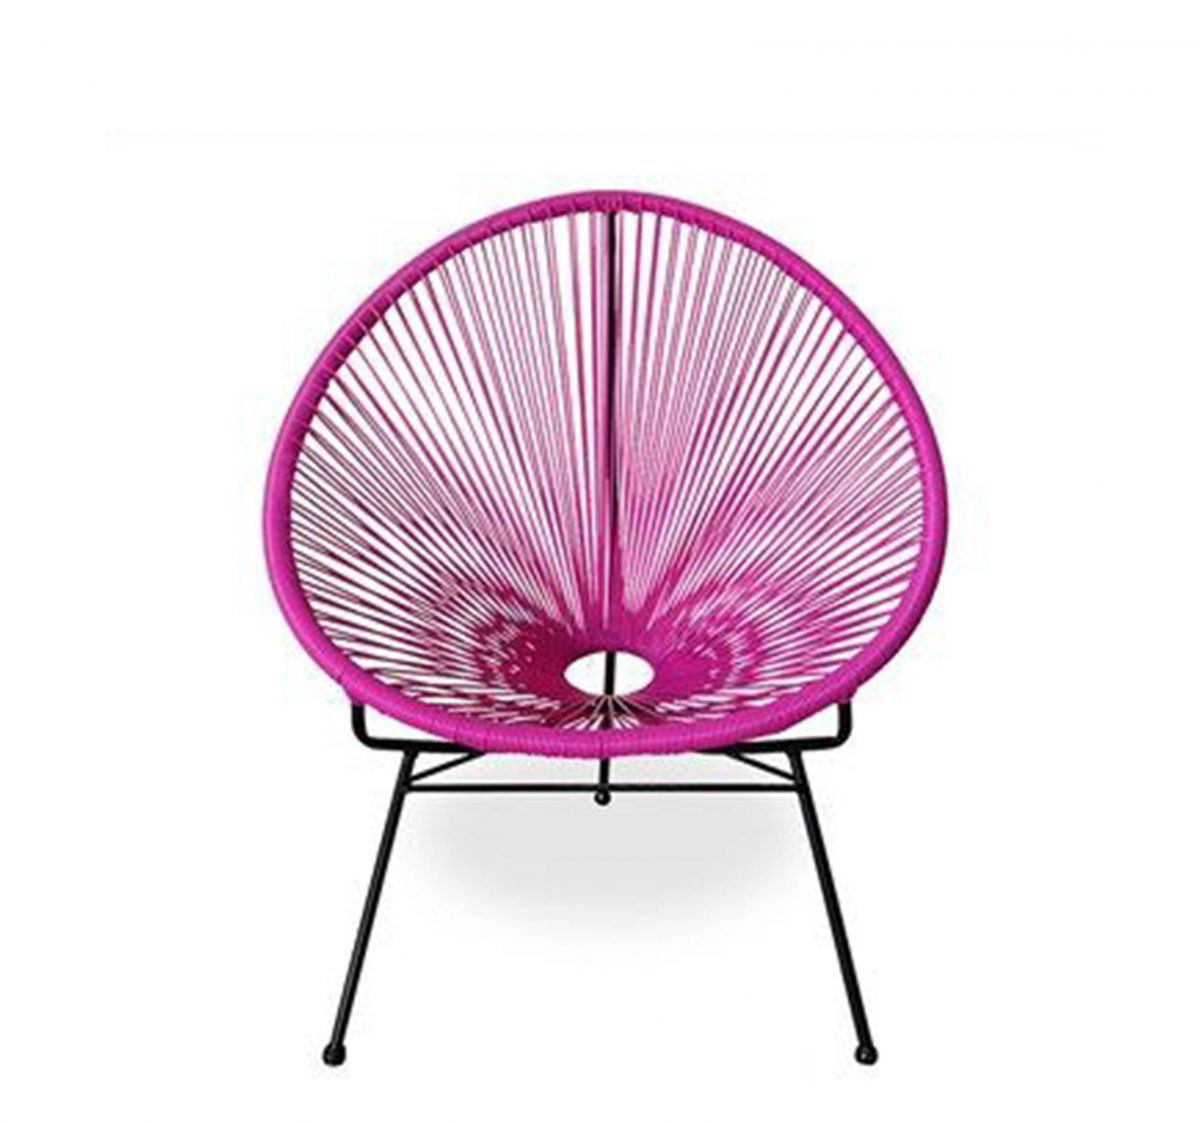 6. Acapulco outdoor chair